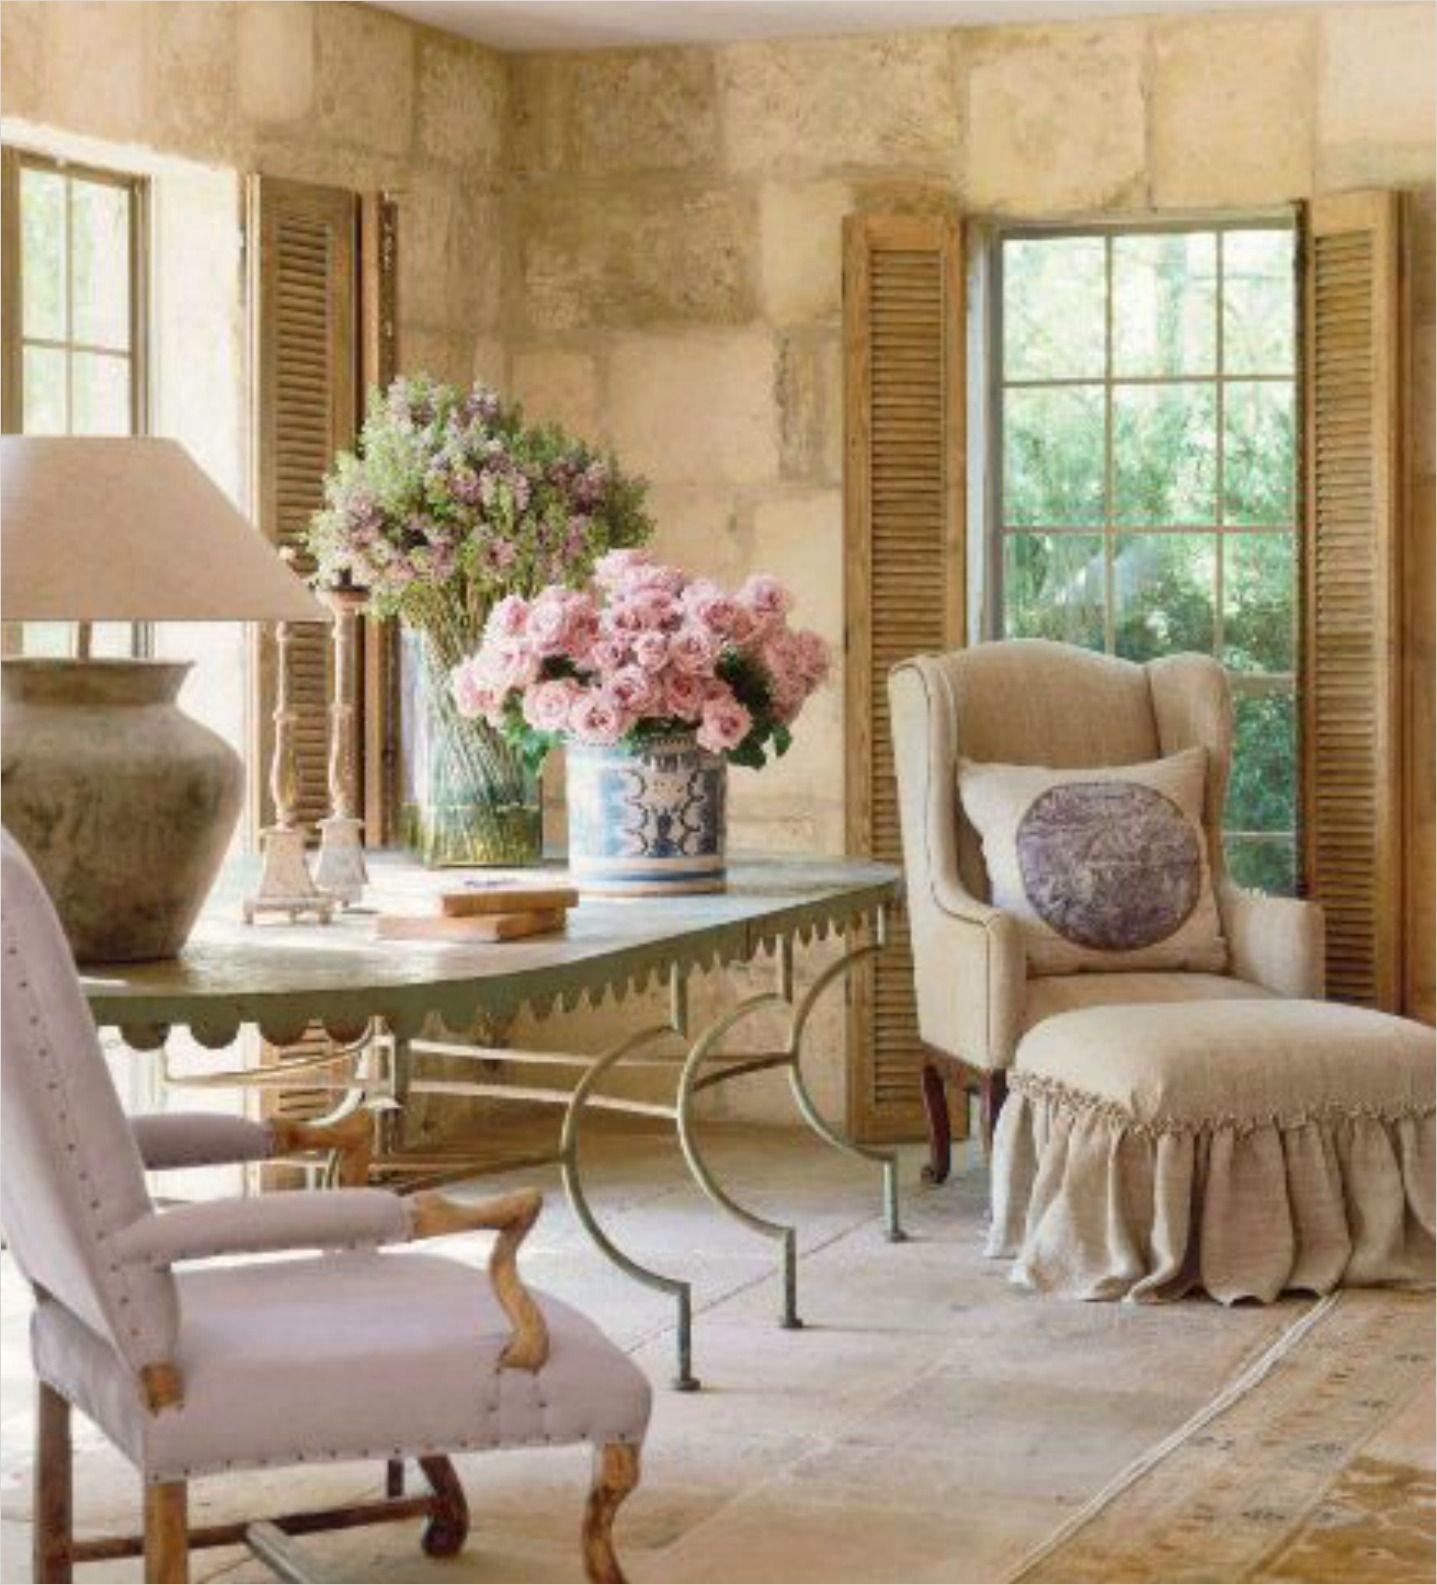 42 Cozy Country Farmhouse Living Room 33 31 Beautiful French Farmhouse Style Moments Decor Inspiration 4